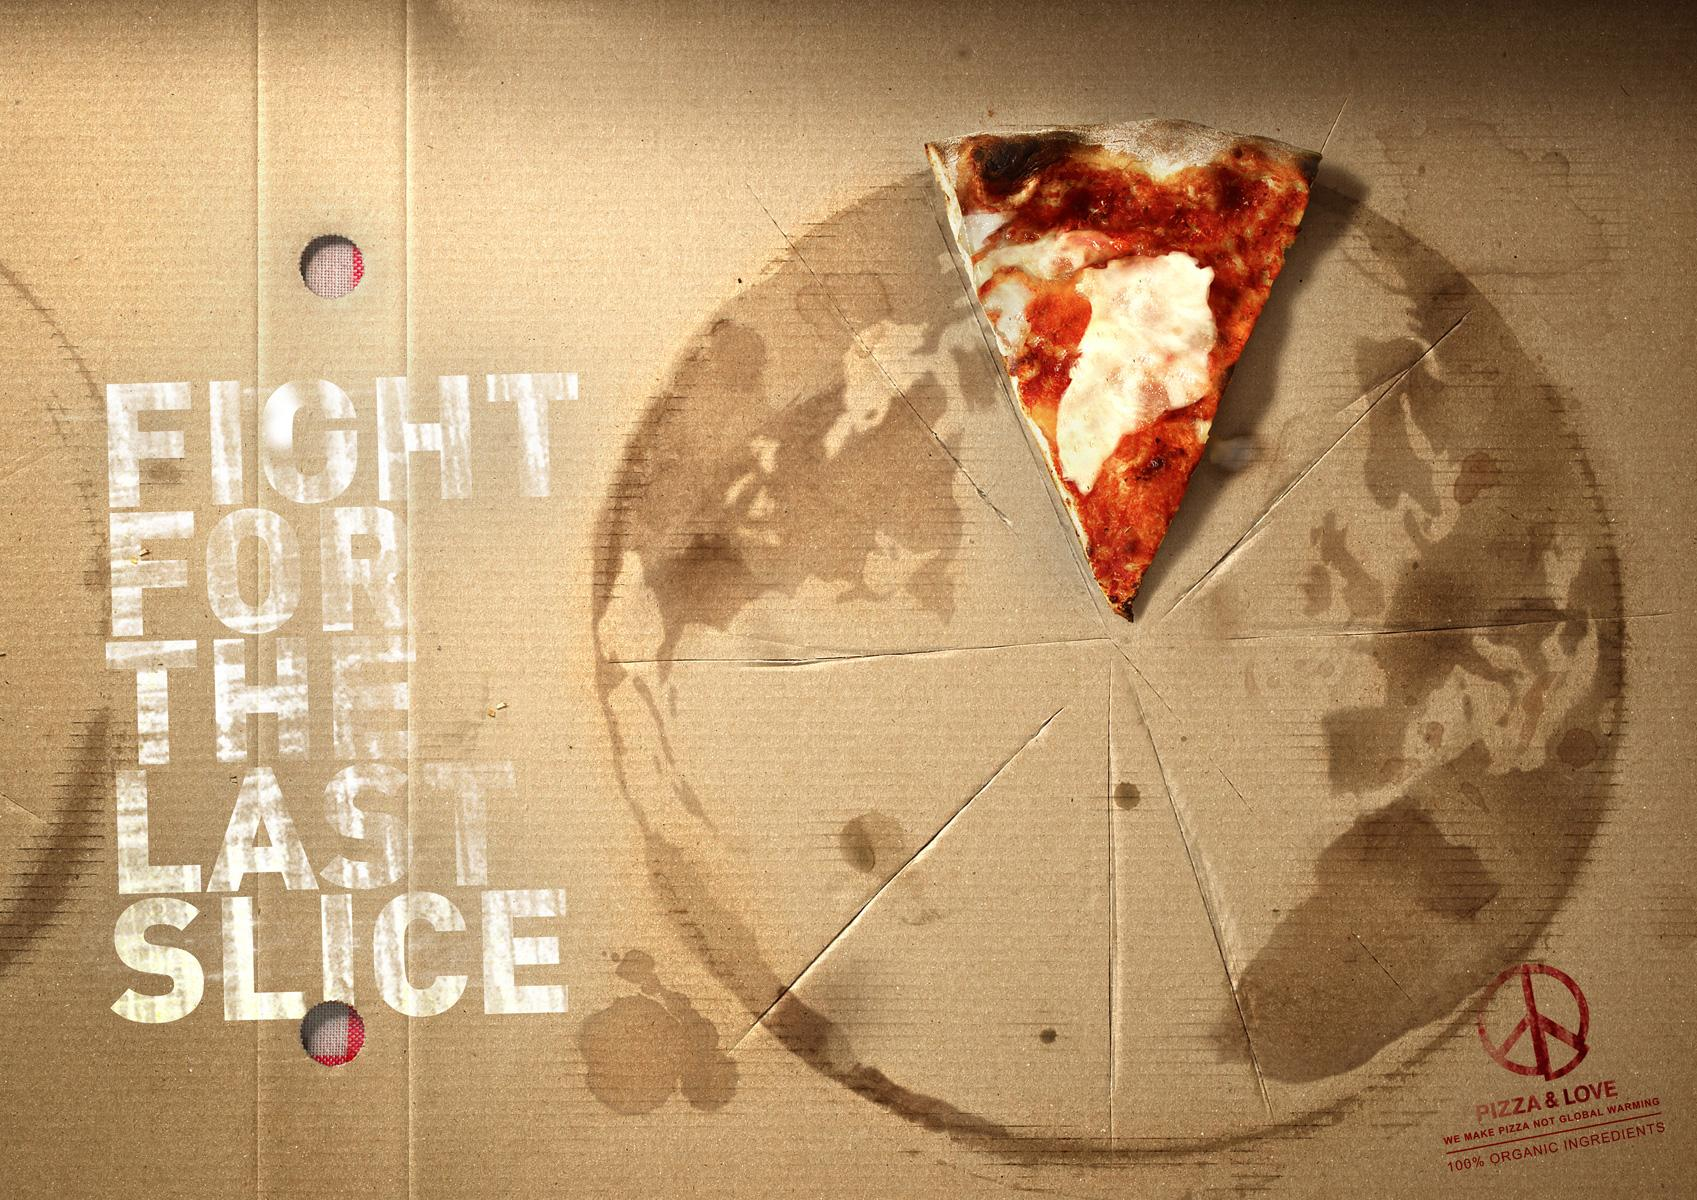 Pizza&Love Print Ad -  Fight for the Arctic